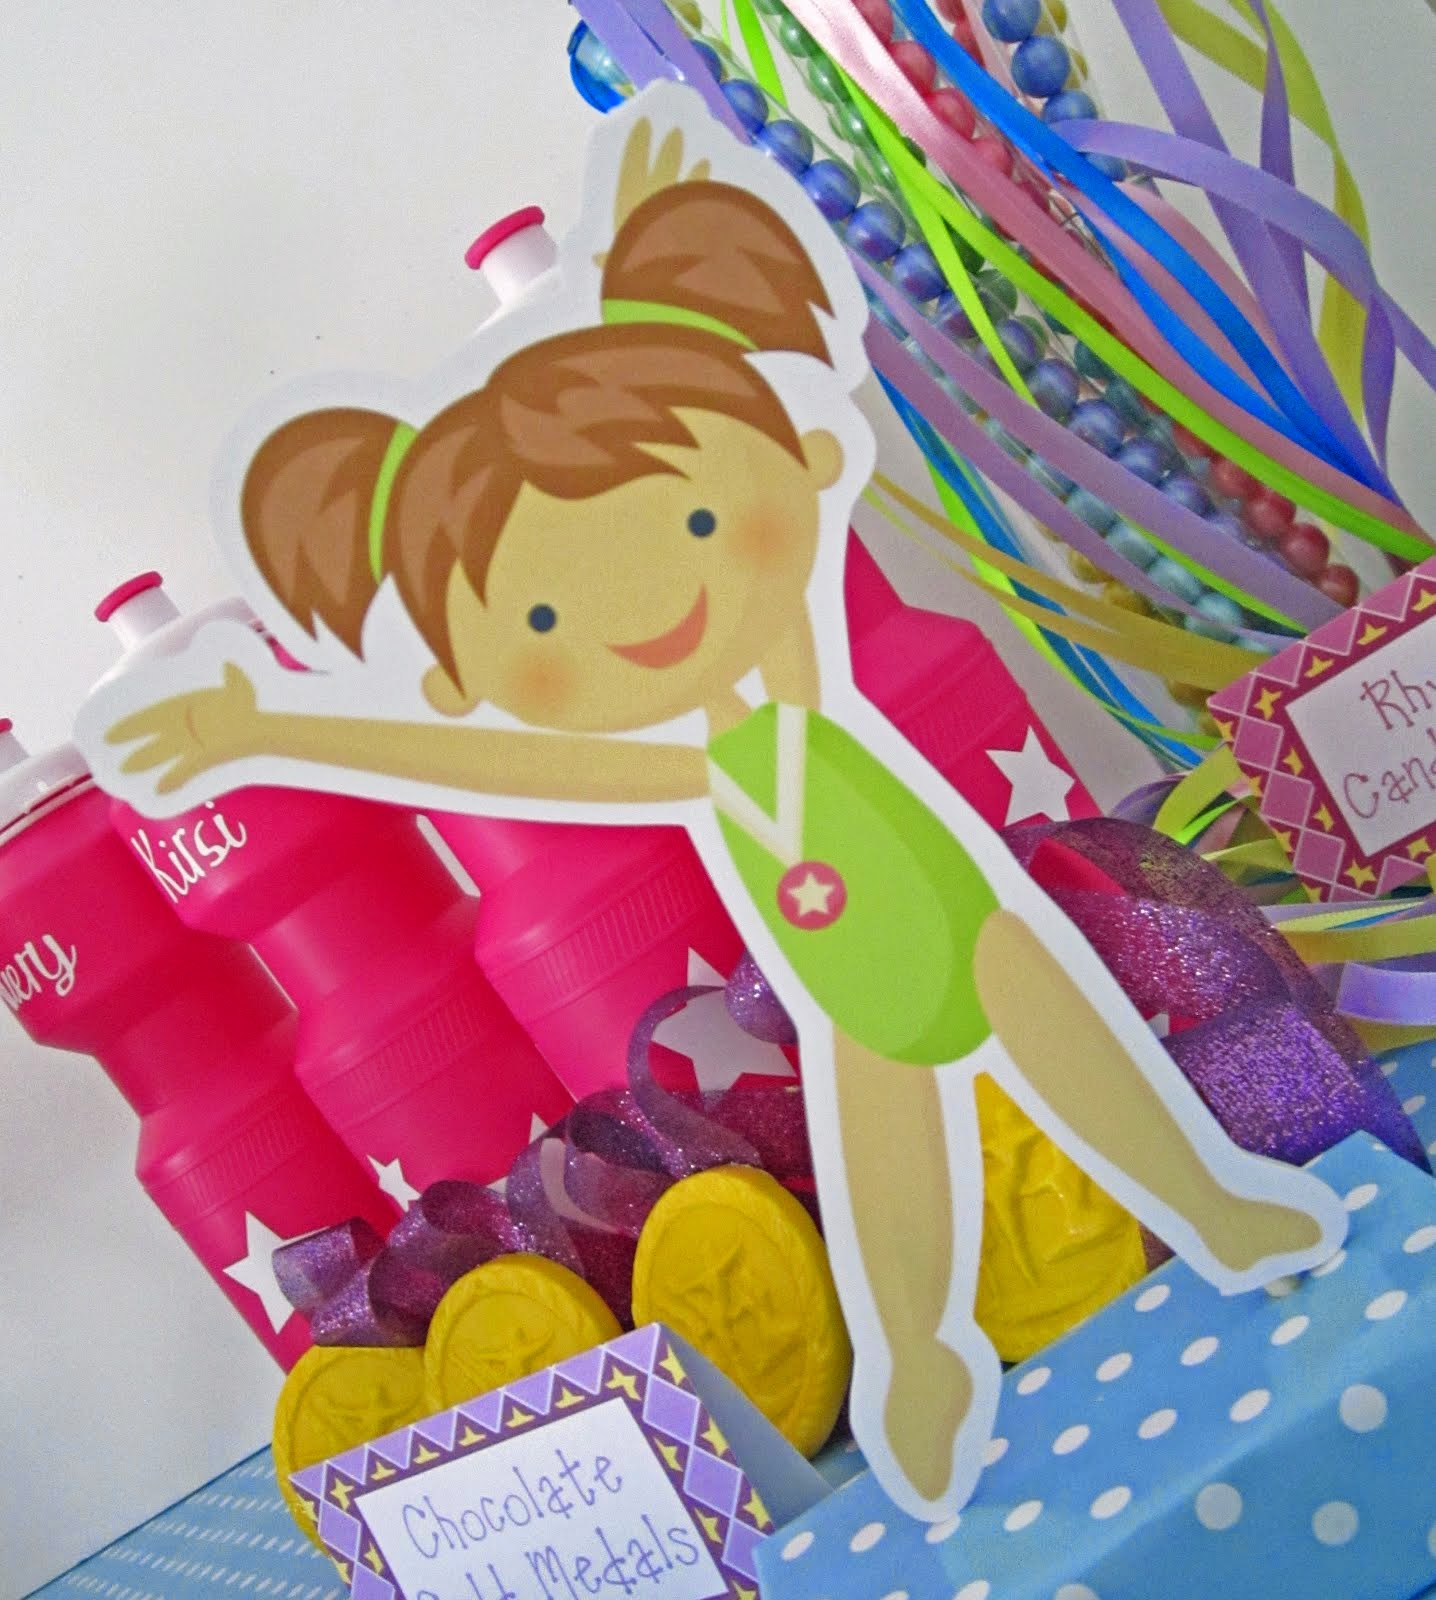 Gymnastics Birthday Party Decorations Sweeten Your Day Events Rainbow Dash Pony Party